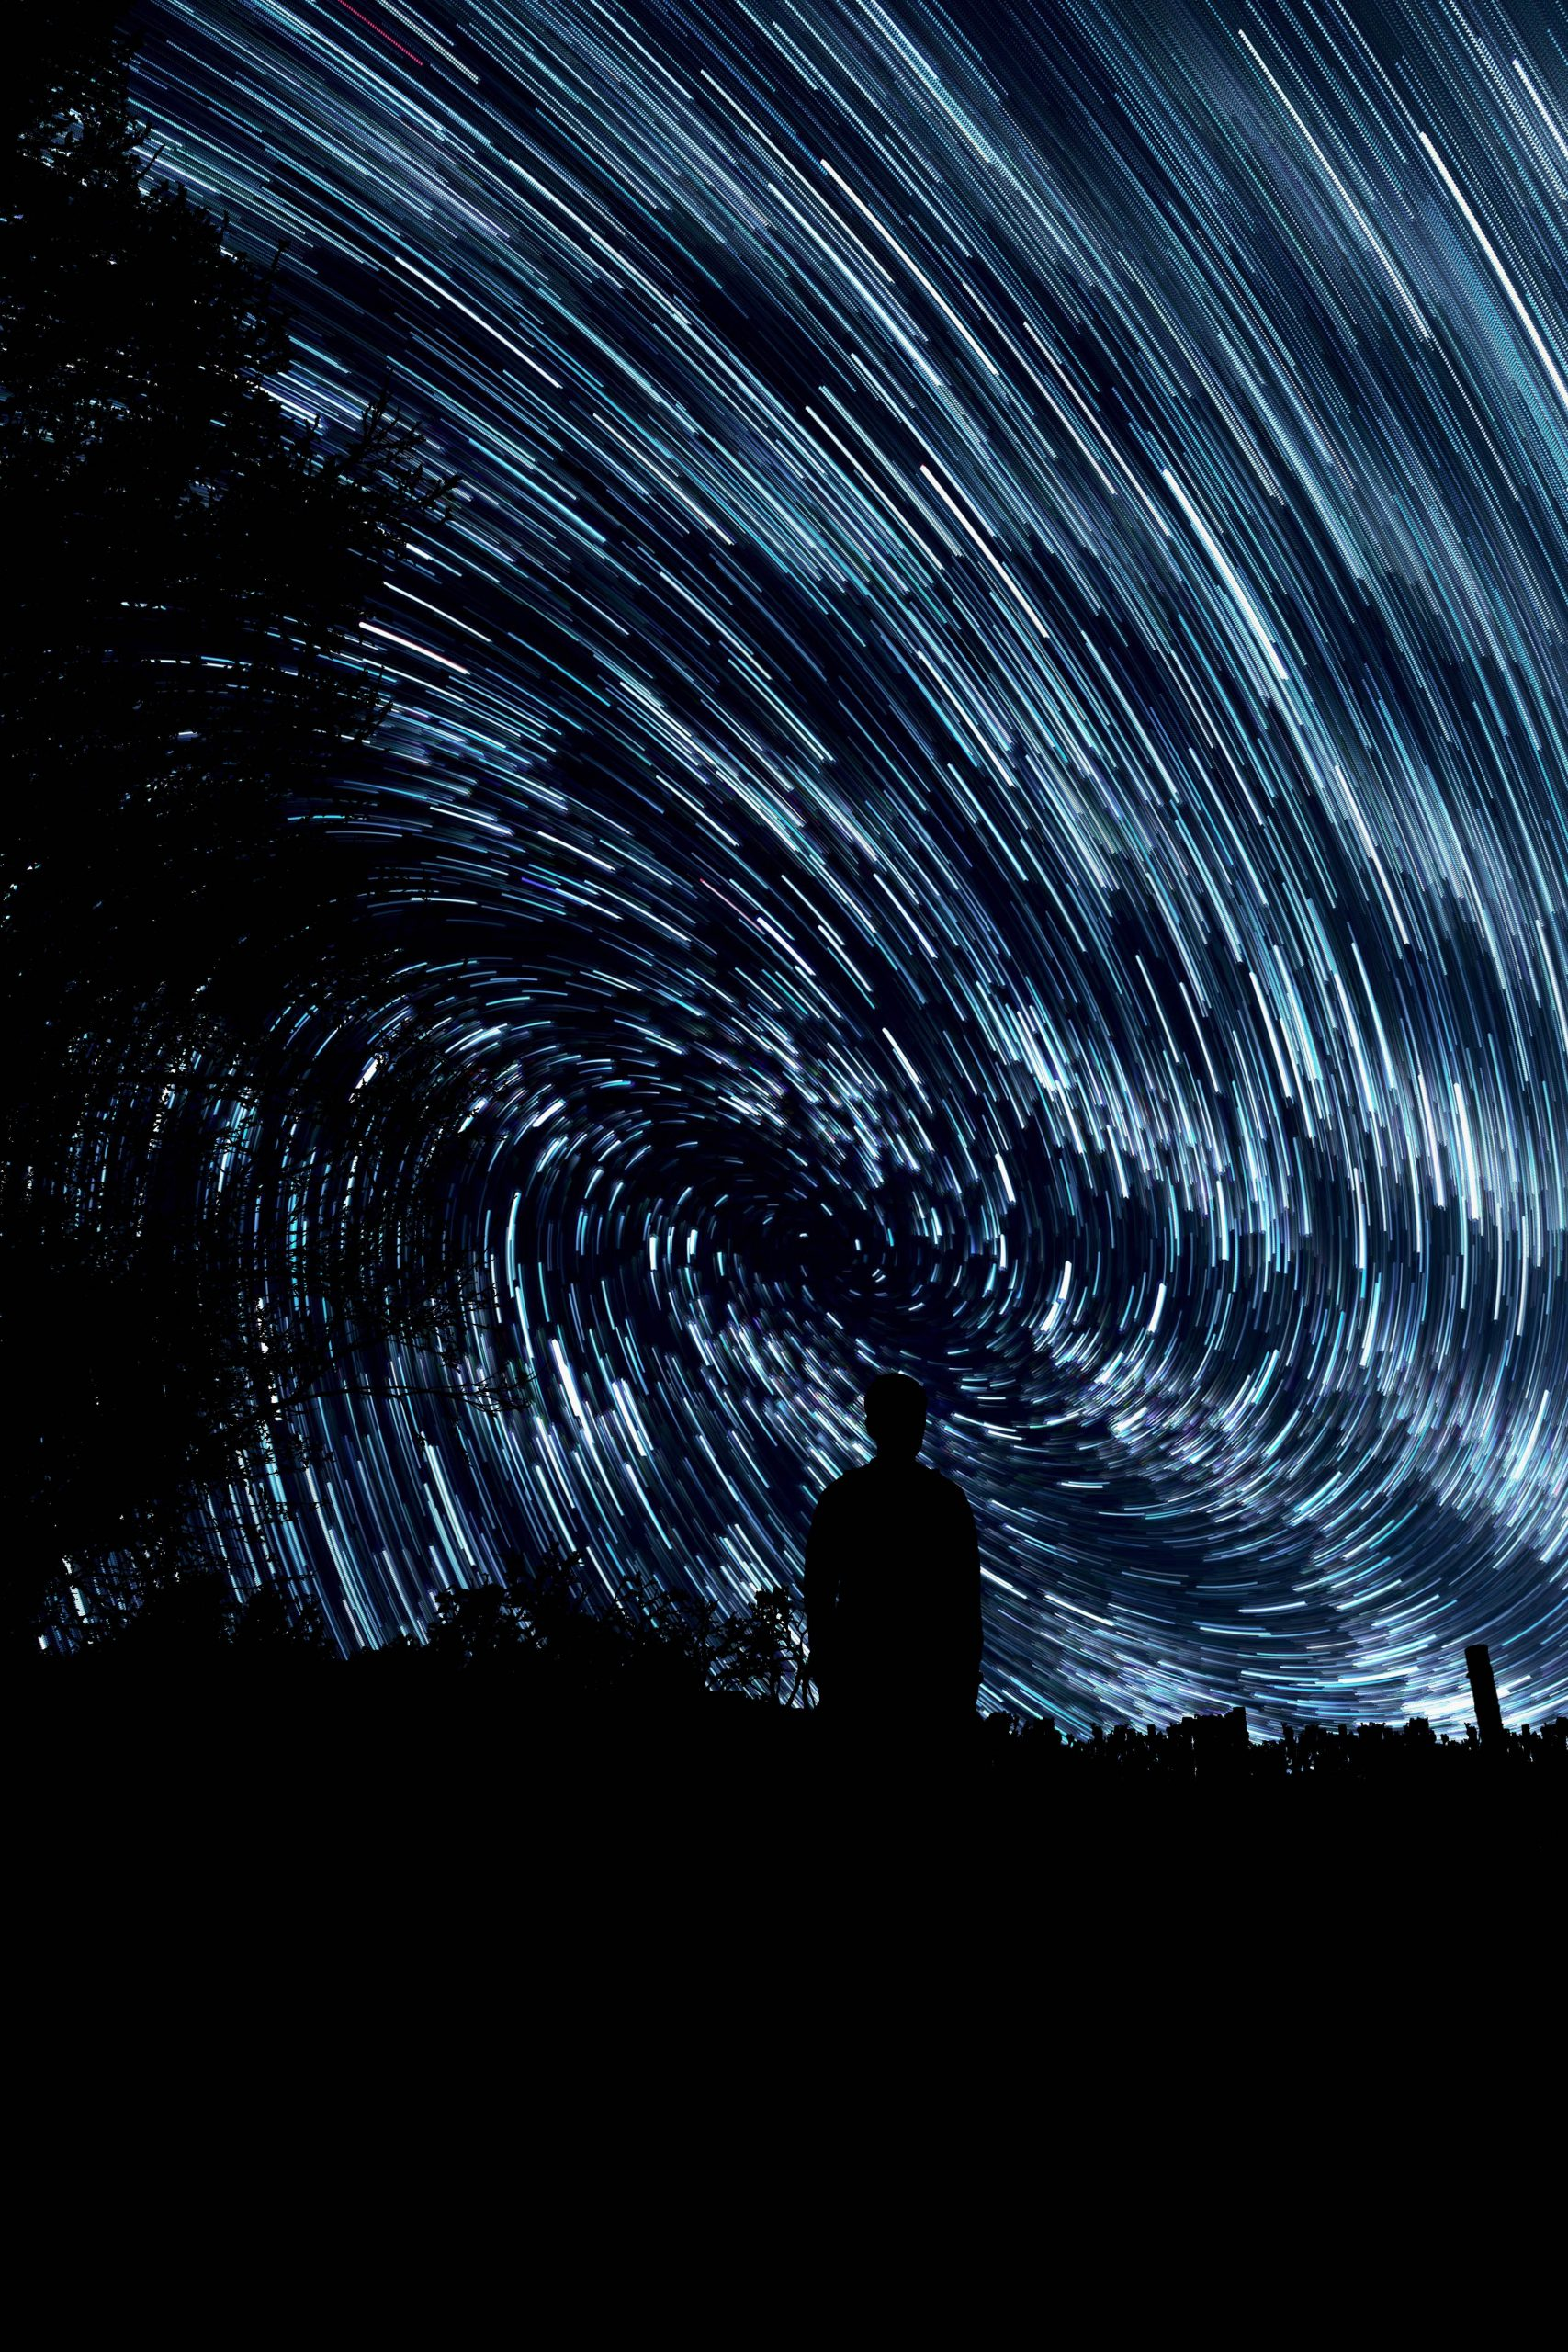 The blue sky is covered in bright stars that have been edited to swirl